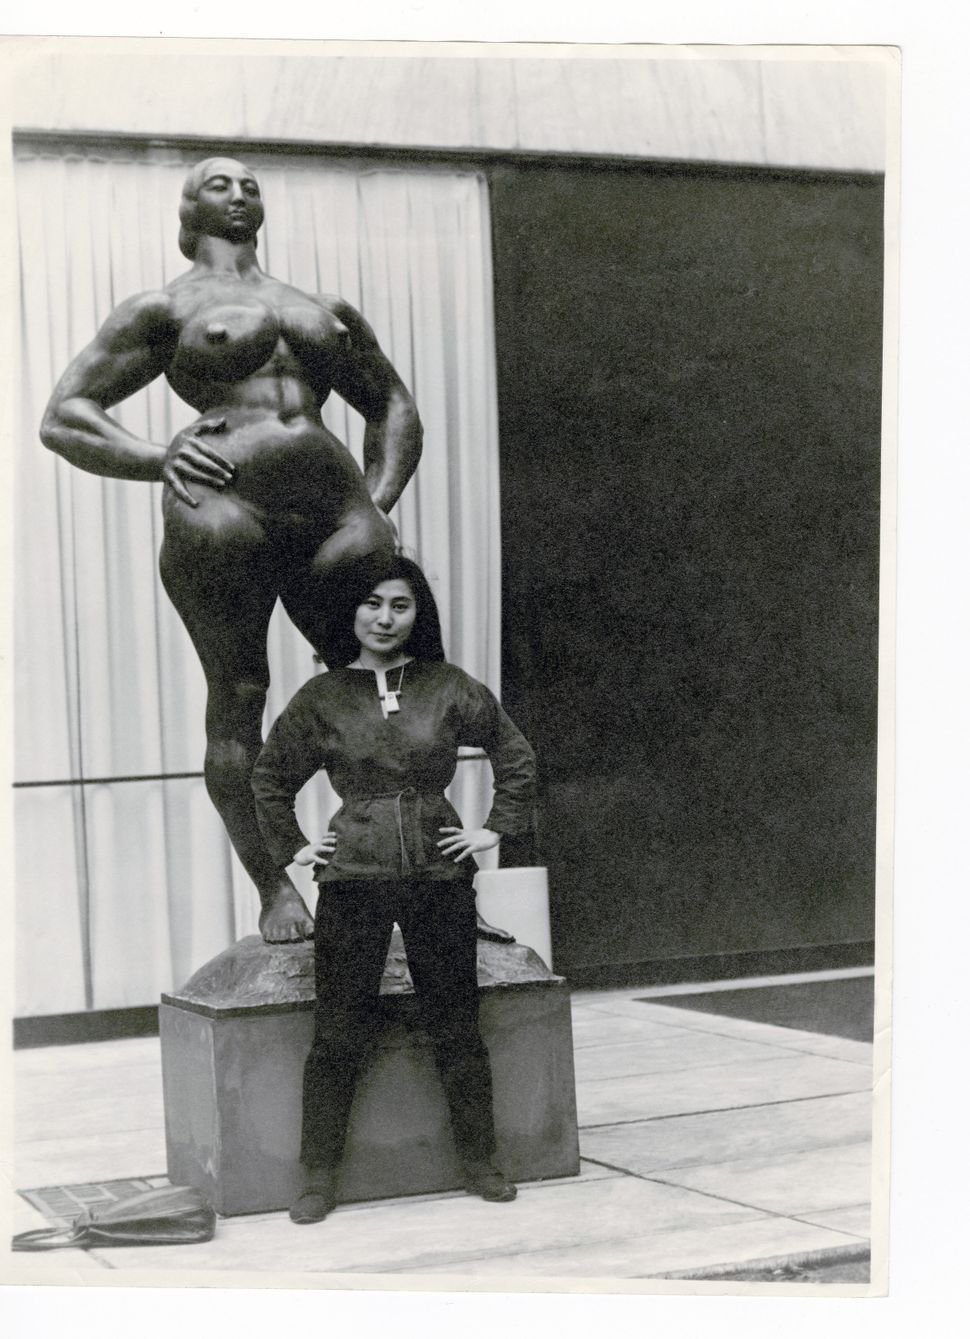 Yoko Ono with Standing Woman (1932) by Gaston Lachaise, The Museum of Modern Art Sculpture Garden, New York. c. 1960–61. Phot